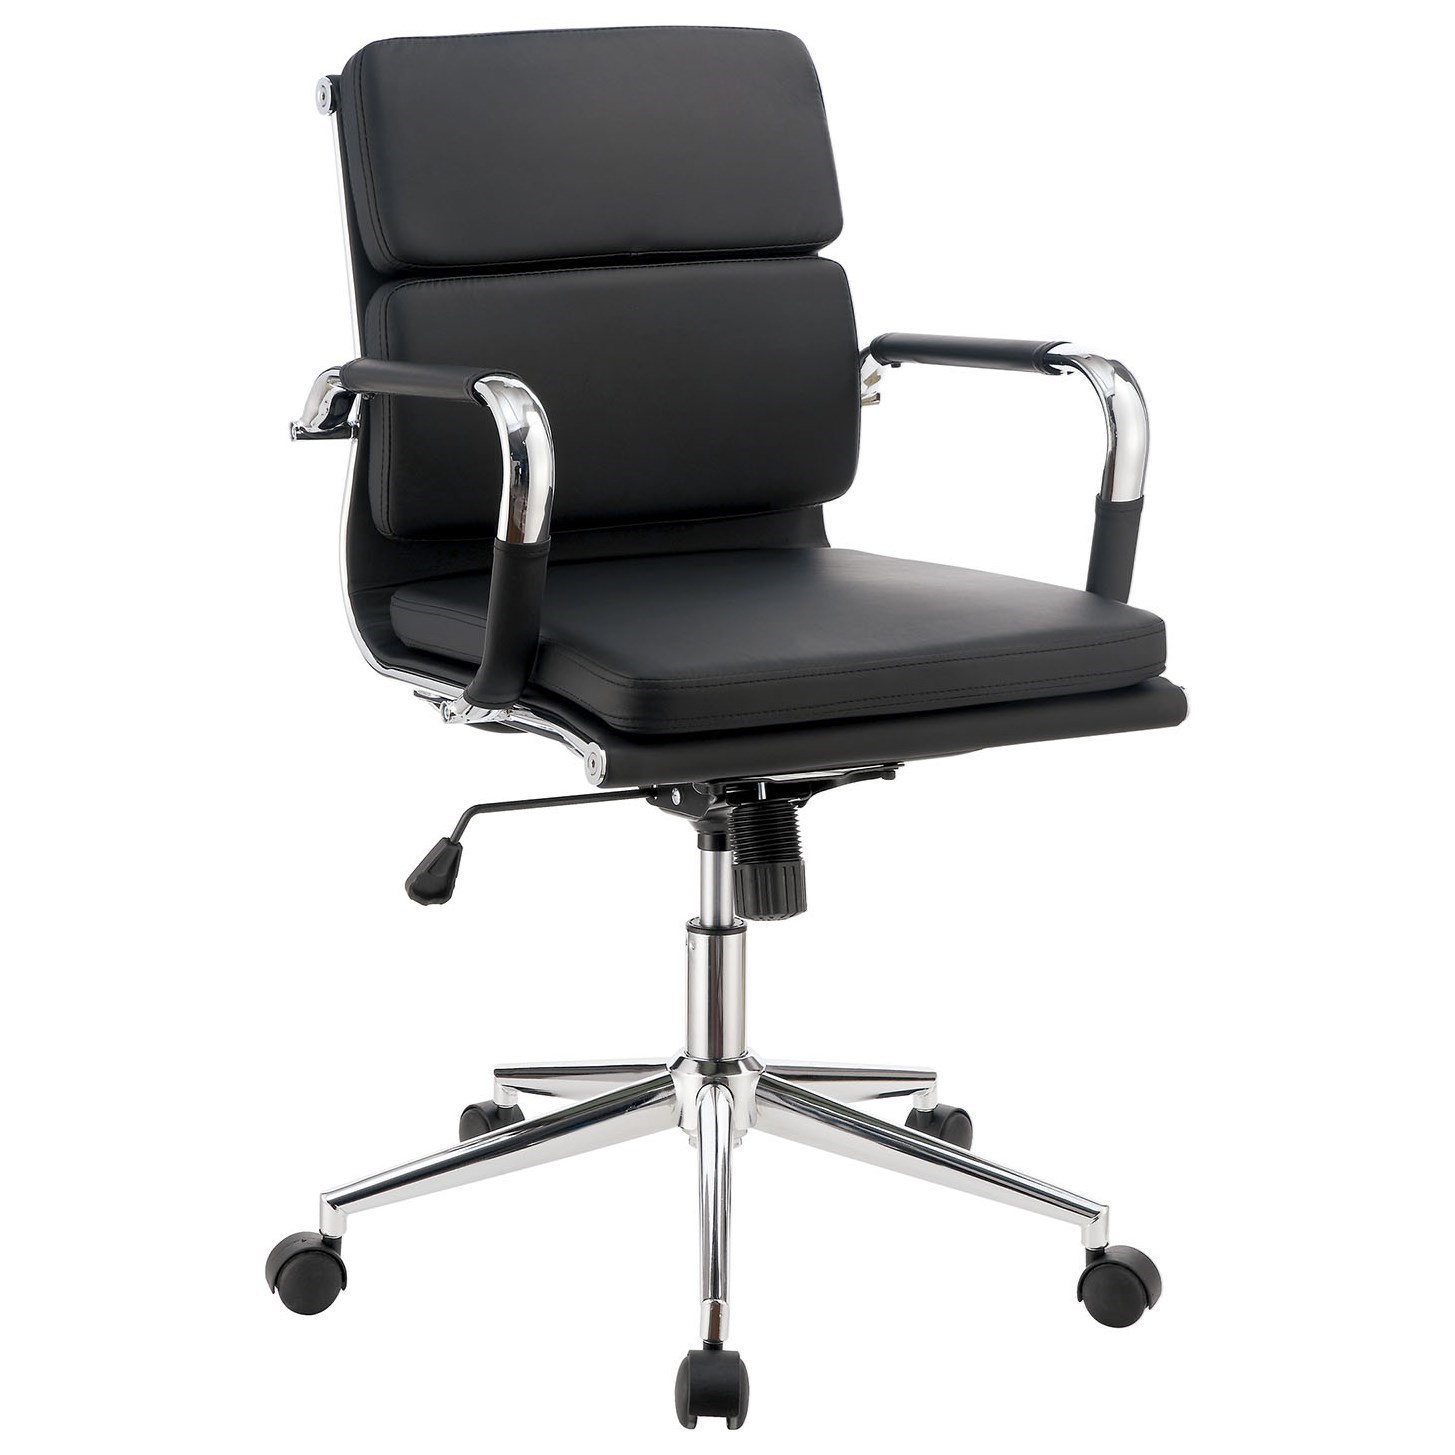 office chairs with wheels hammock chair stand india furniture of america mercedes contemporary casters